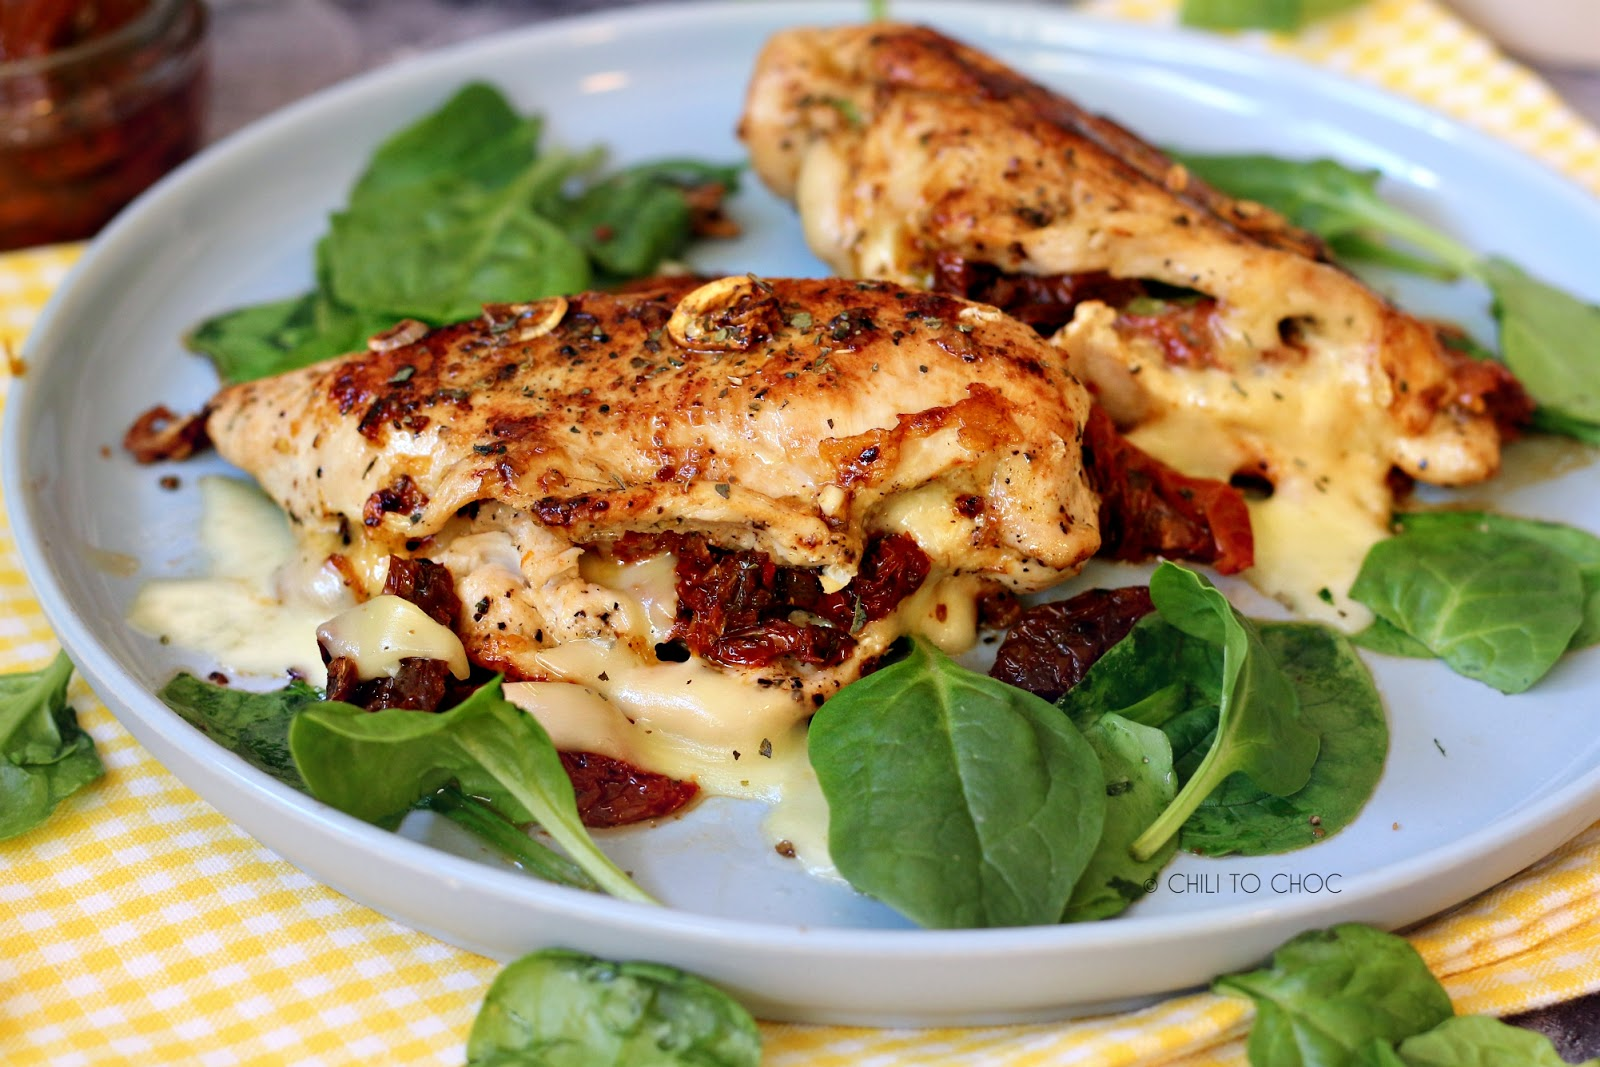 Stuffed Chicken with Sundried Tomatoes & Gouda